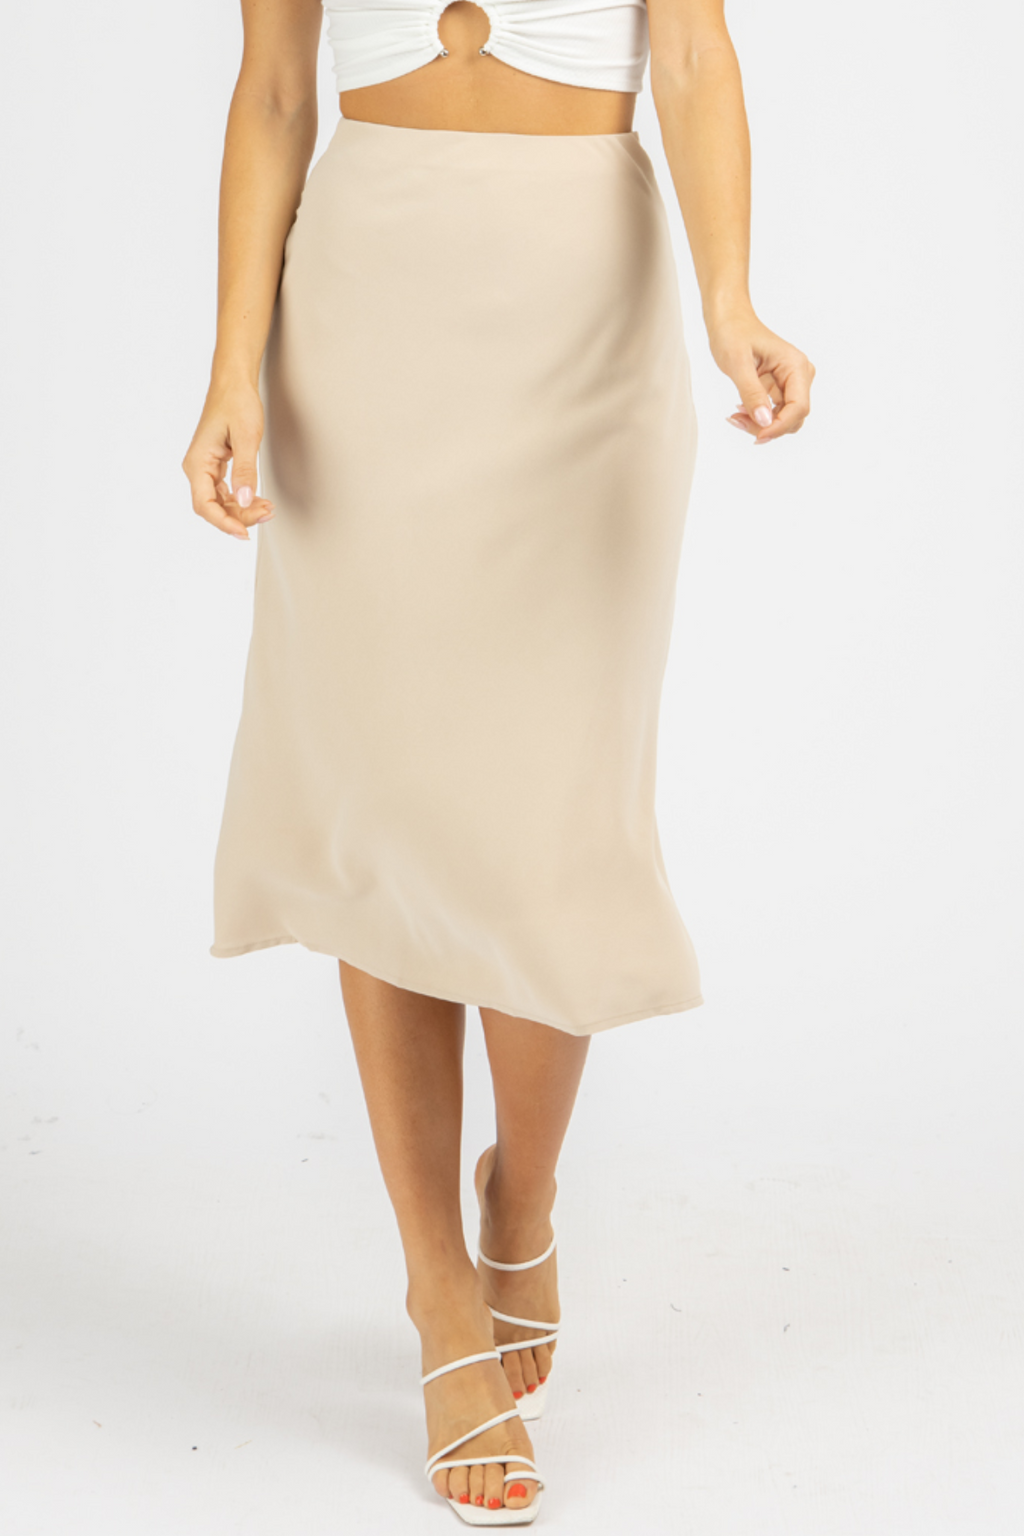 TAUPE LINED HIGH RISE MIDI SKIRT *RESTOCK COMING SOON*